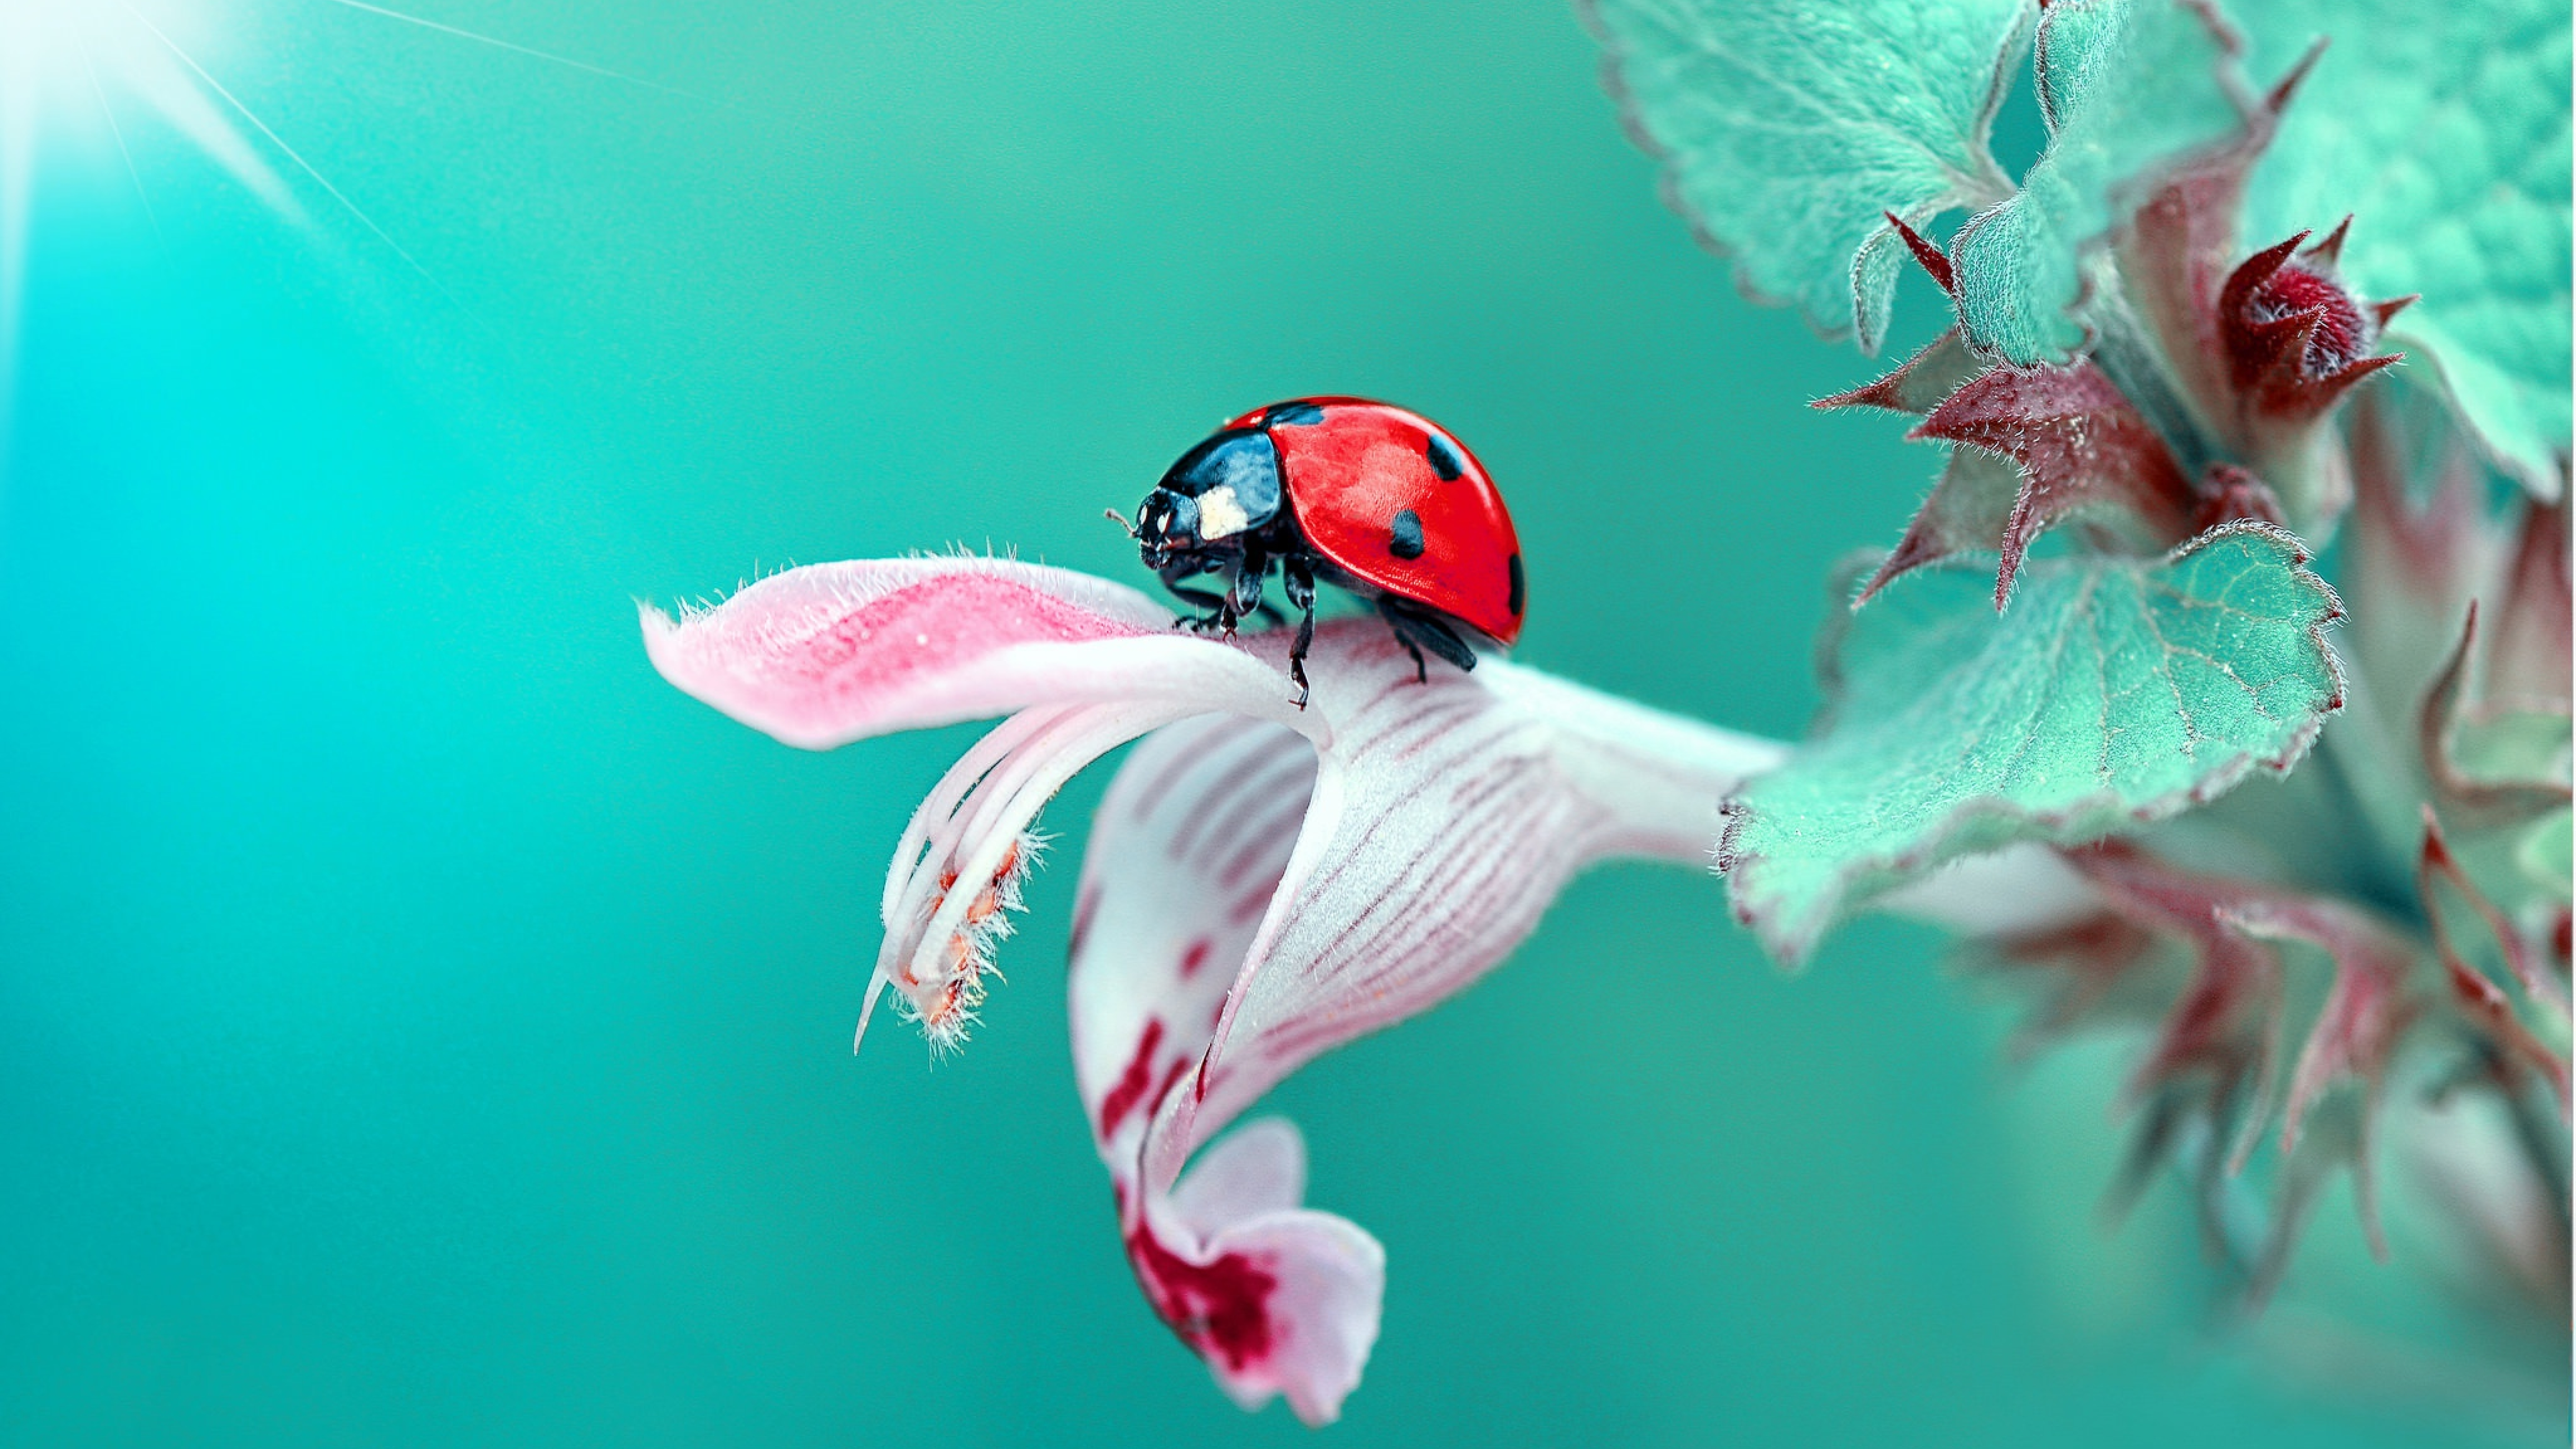 Insect Ladybug Macro, Full HD 2K Wallpaper Wallpaper Hd For Mobile Samsung Galaxy S4